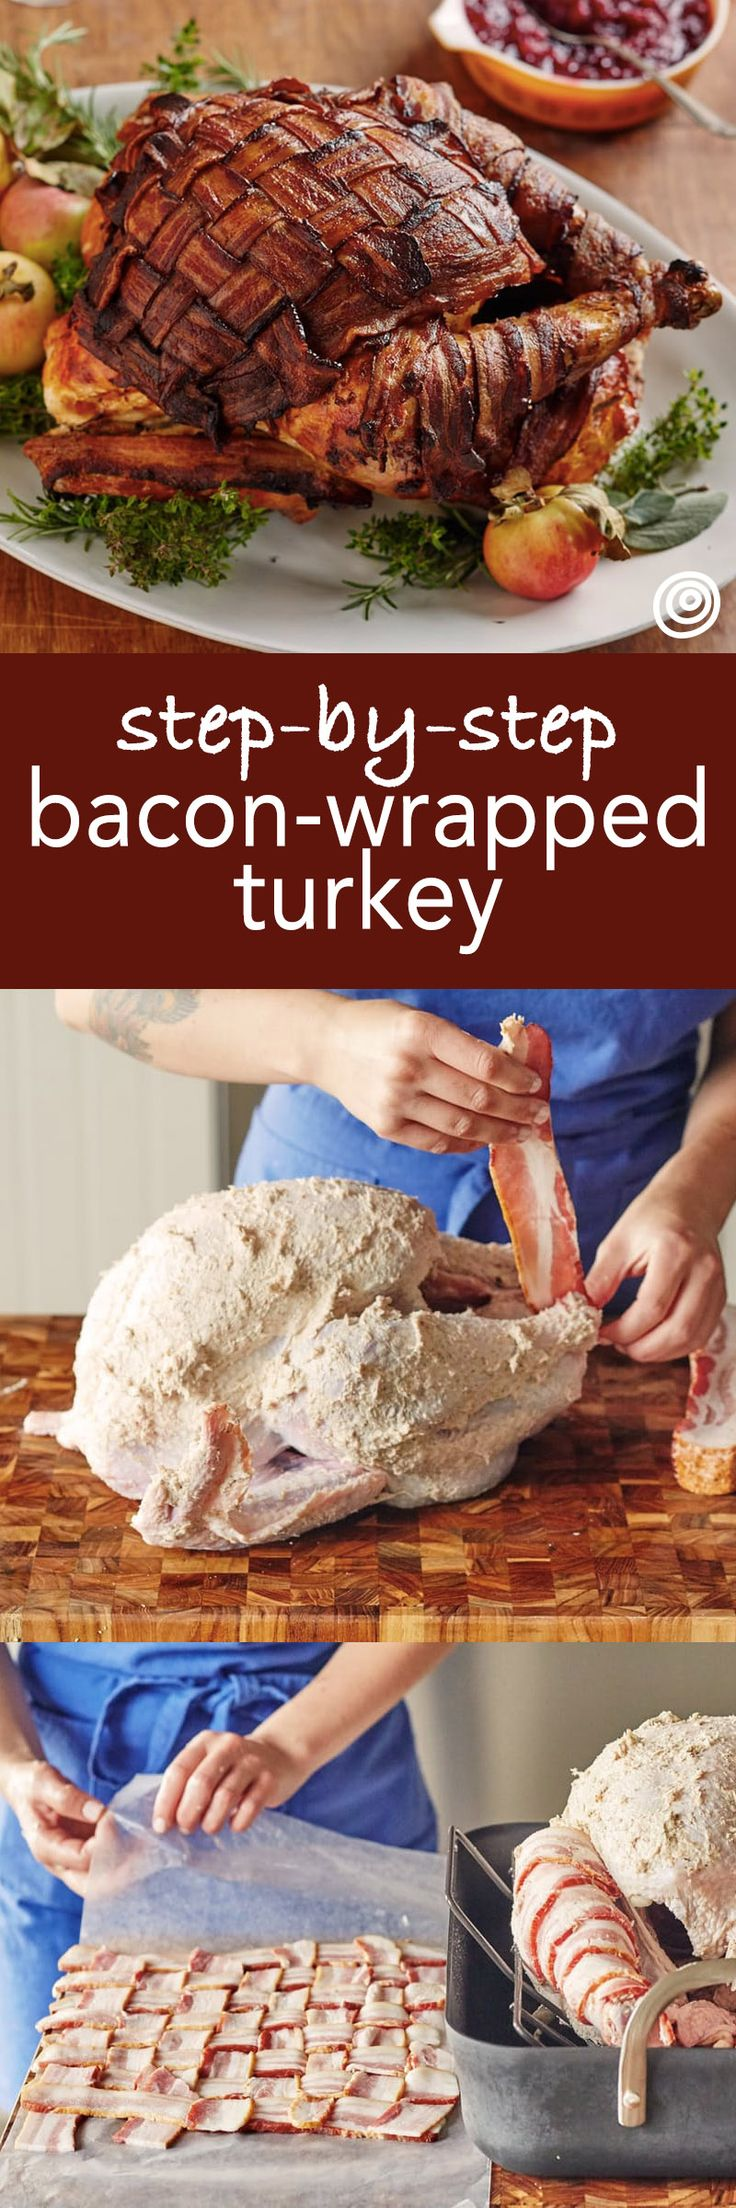 How To Make A Baconwrapped Turkey